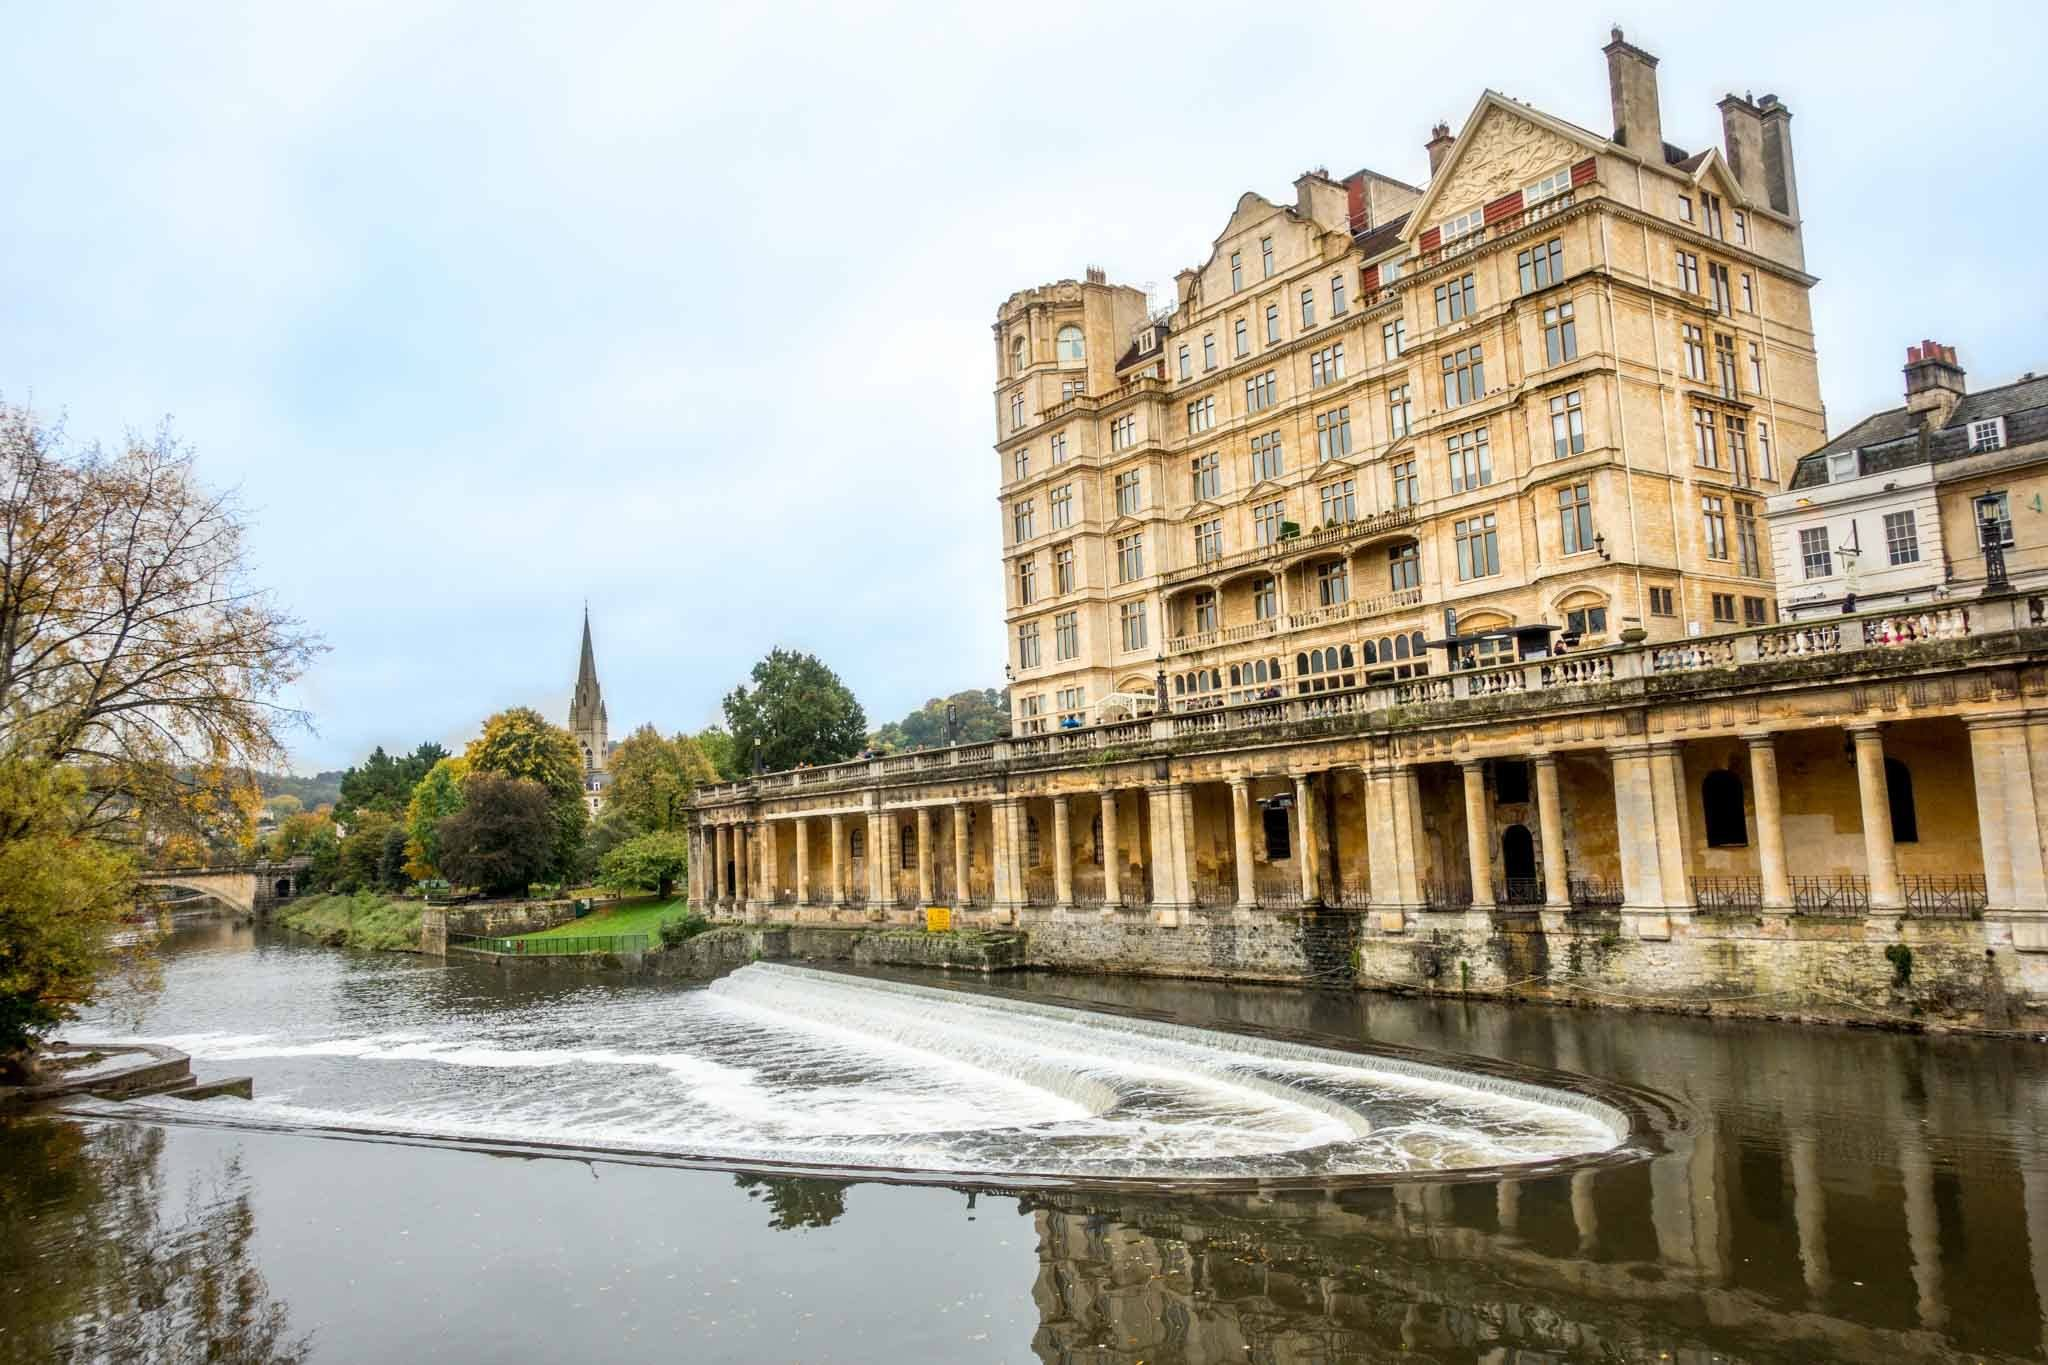 Walking along the River Avon is one of the great things to do on a weekend in Bath England